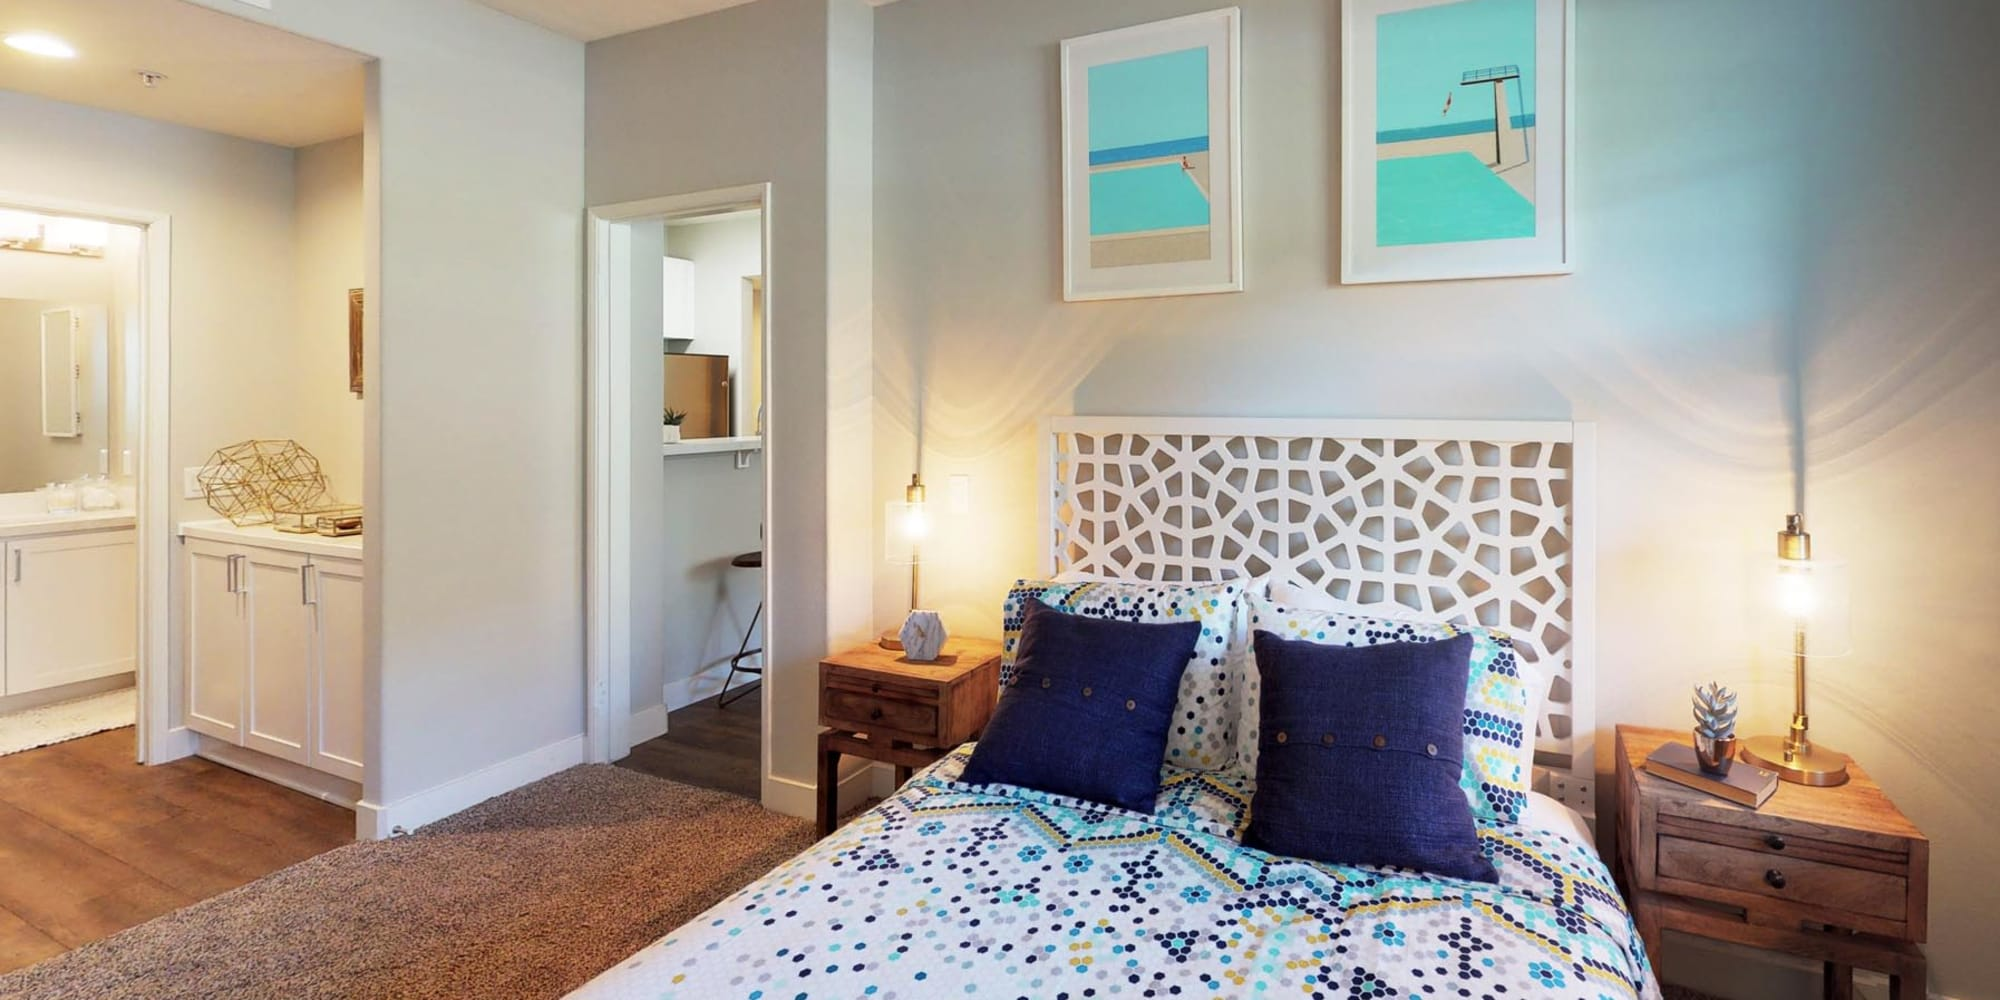 Comfortably furnished primary bedroom with an en suite bathroom in a model home at Mission Hills in Camarillo, California